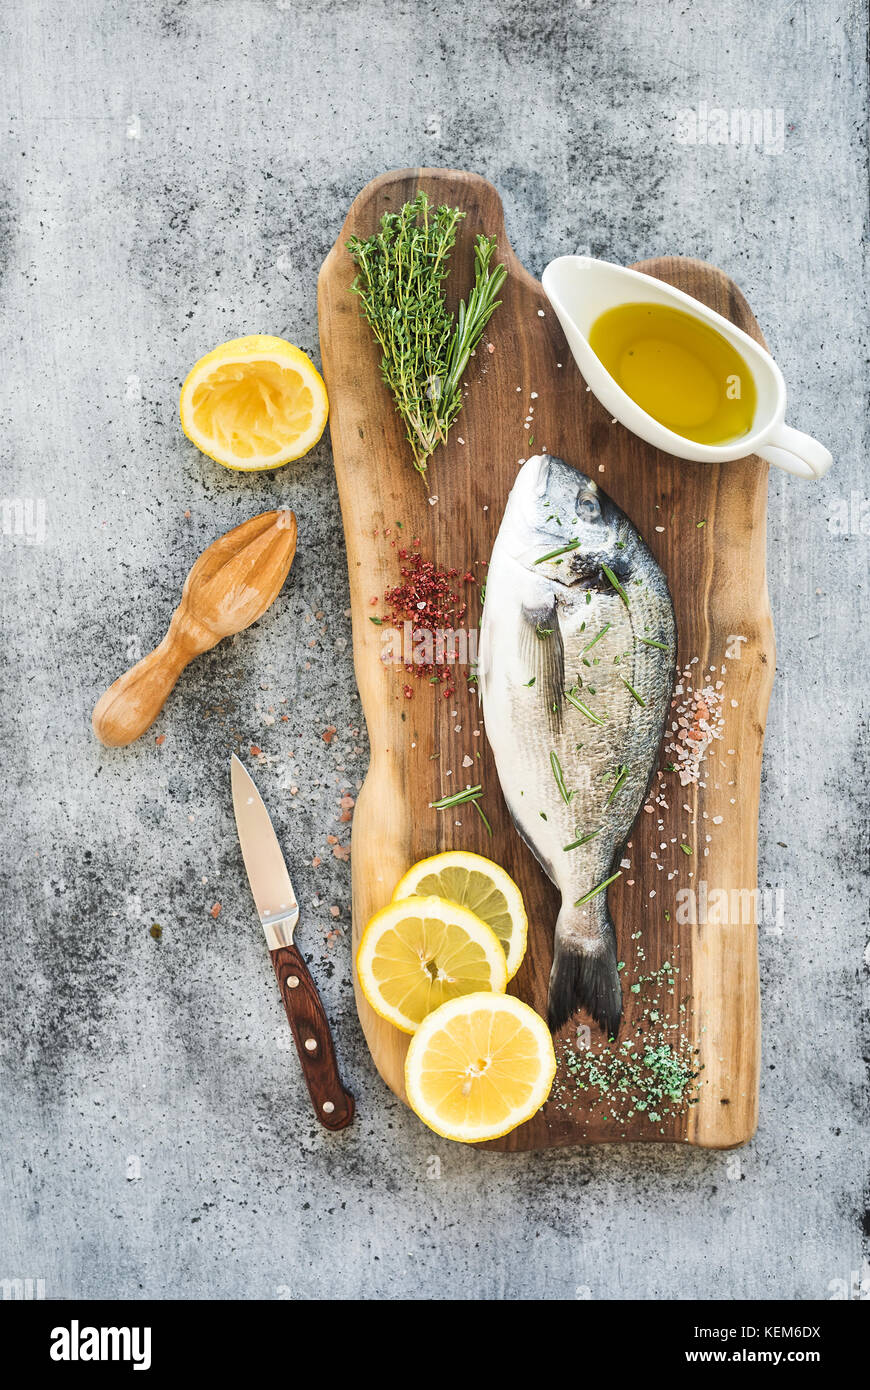 Fresh uncooked dorado or sea bream fish with lemon, herbs, oil and spices on rustic wooden board over grunge backdrop - Stock Image